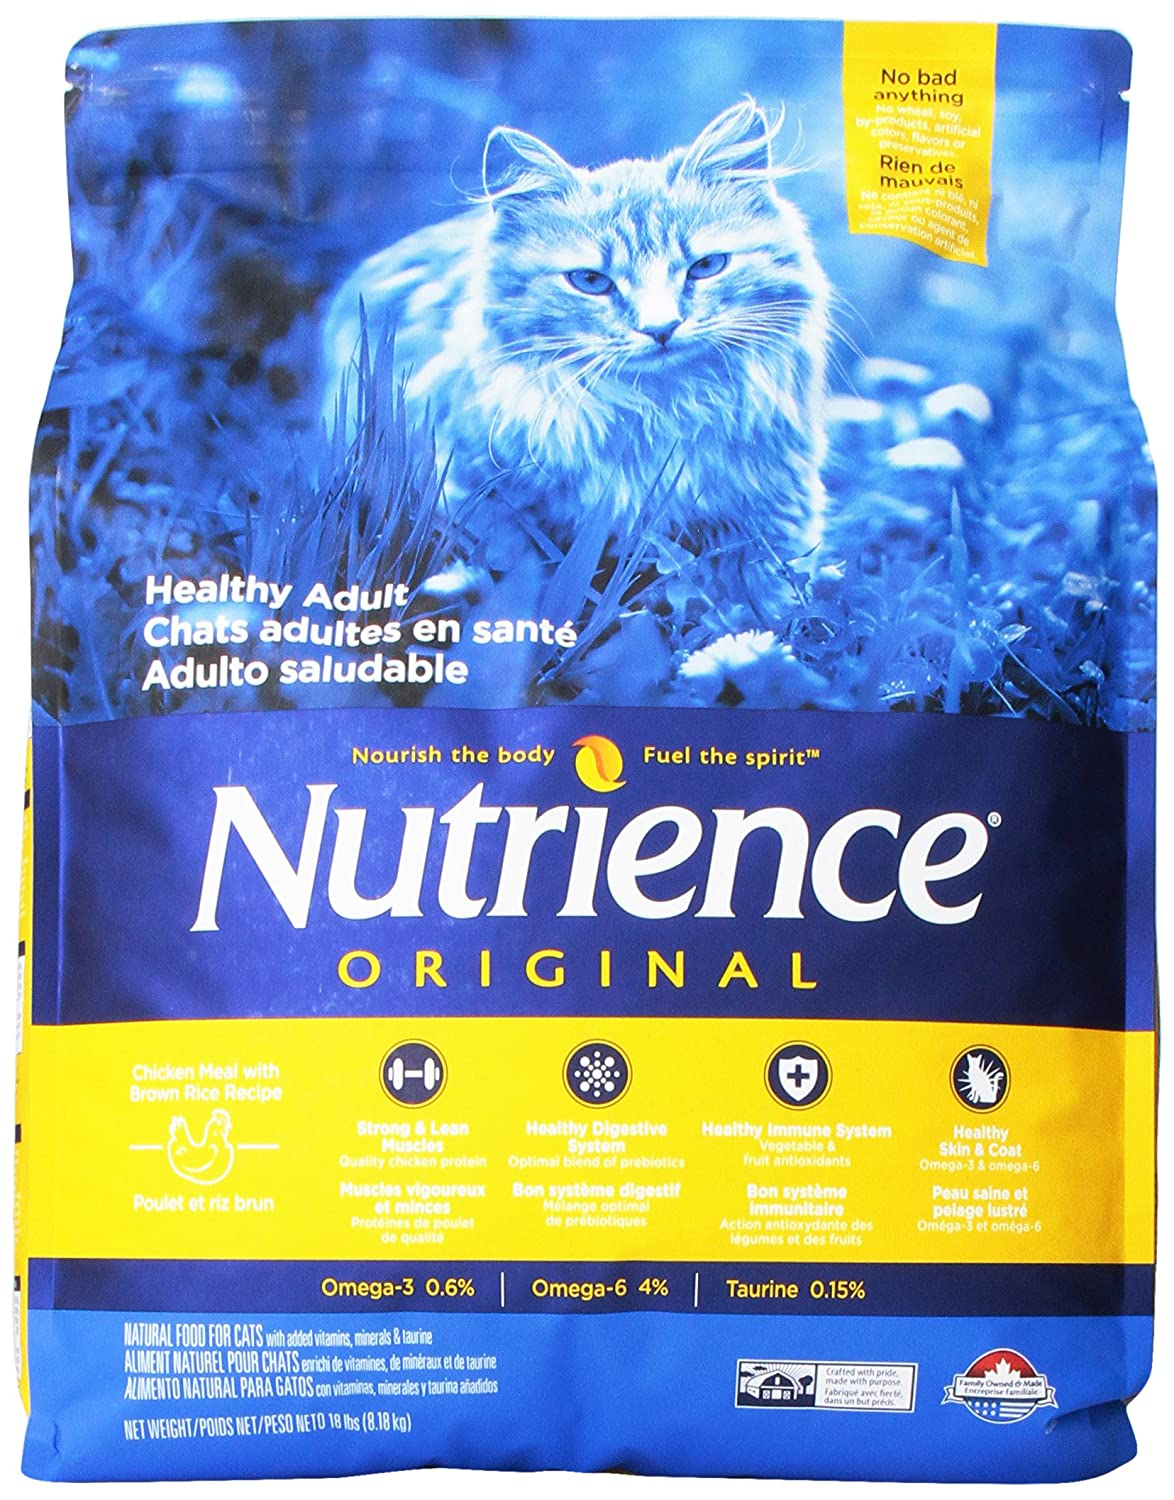 Amazon nutrience original healthy adult cat food 18 pounds amazon nutrience original healthy adult cat food 18 pounds chicken meal with brown rice recipe pet supplies forumfinder Images